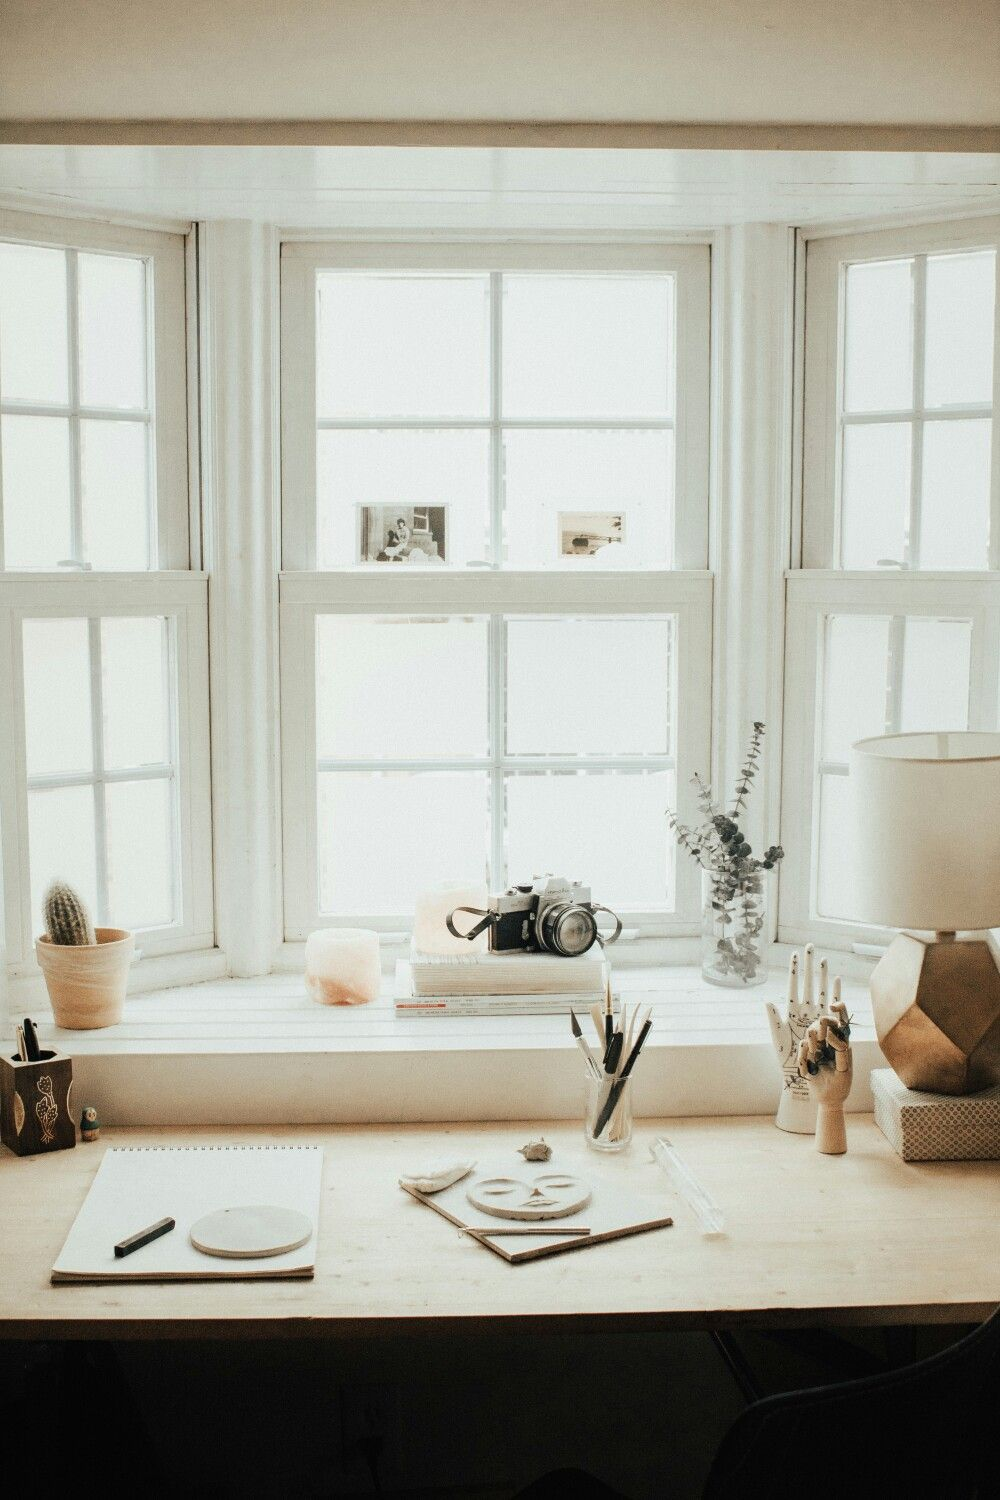 Kate Gillighan Interior | Creative workspace in a bright window nook ...